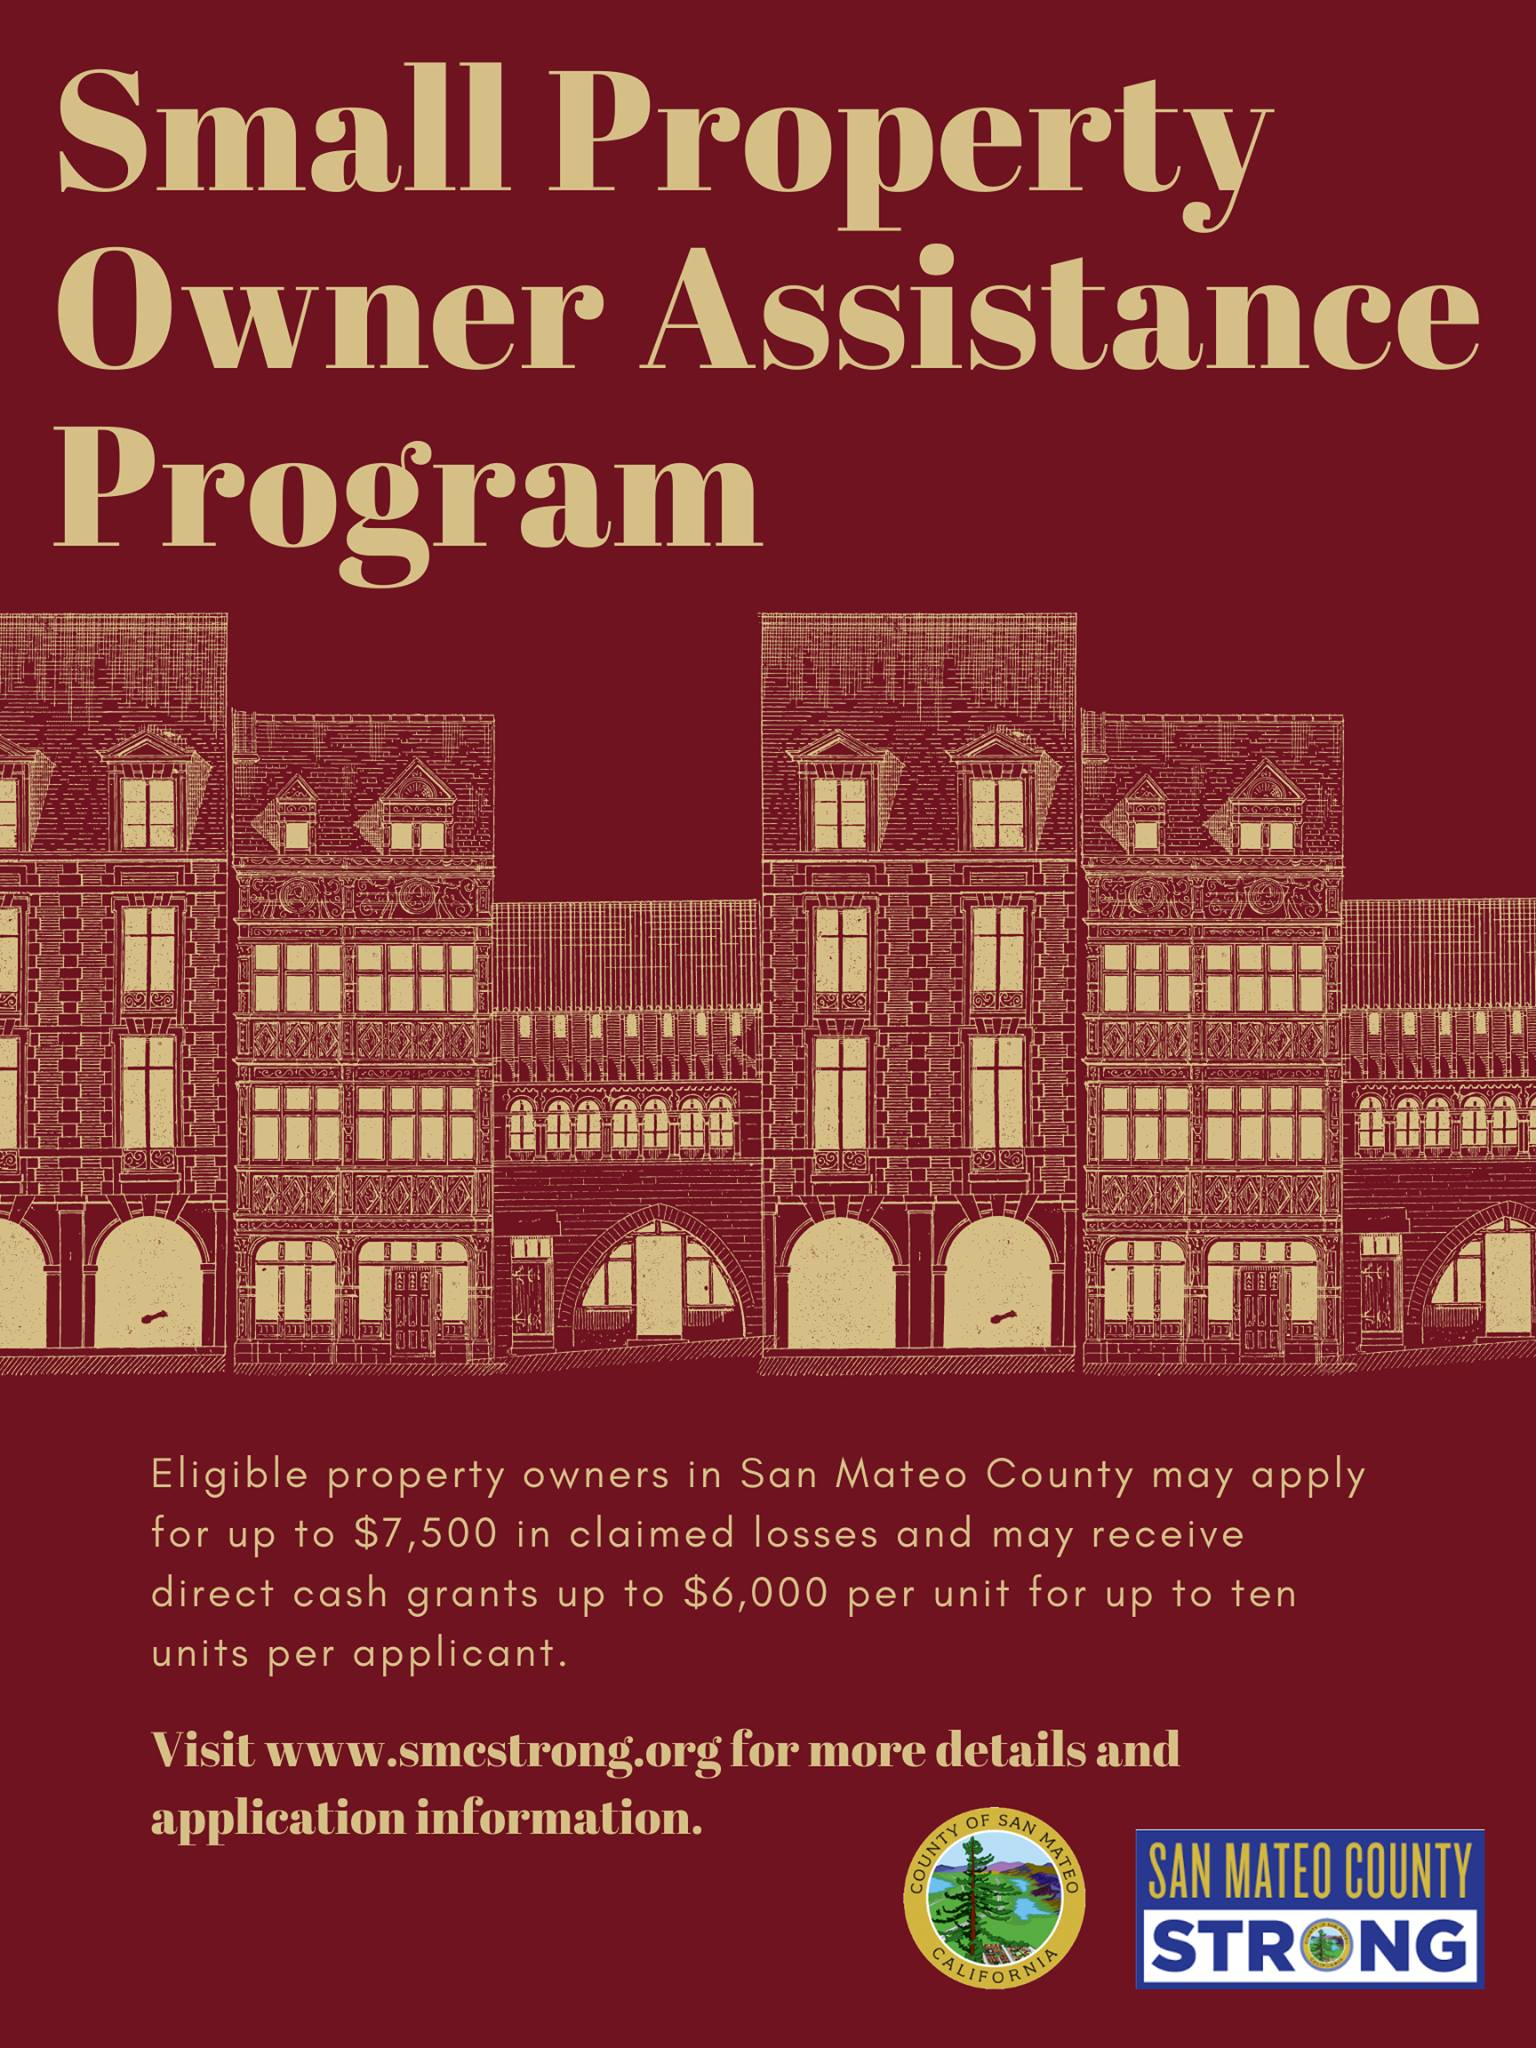 Small Property Owner Assistance Program